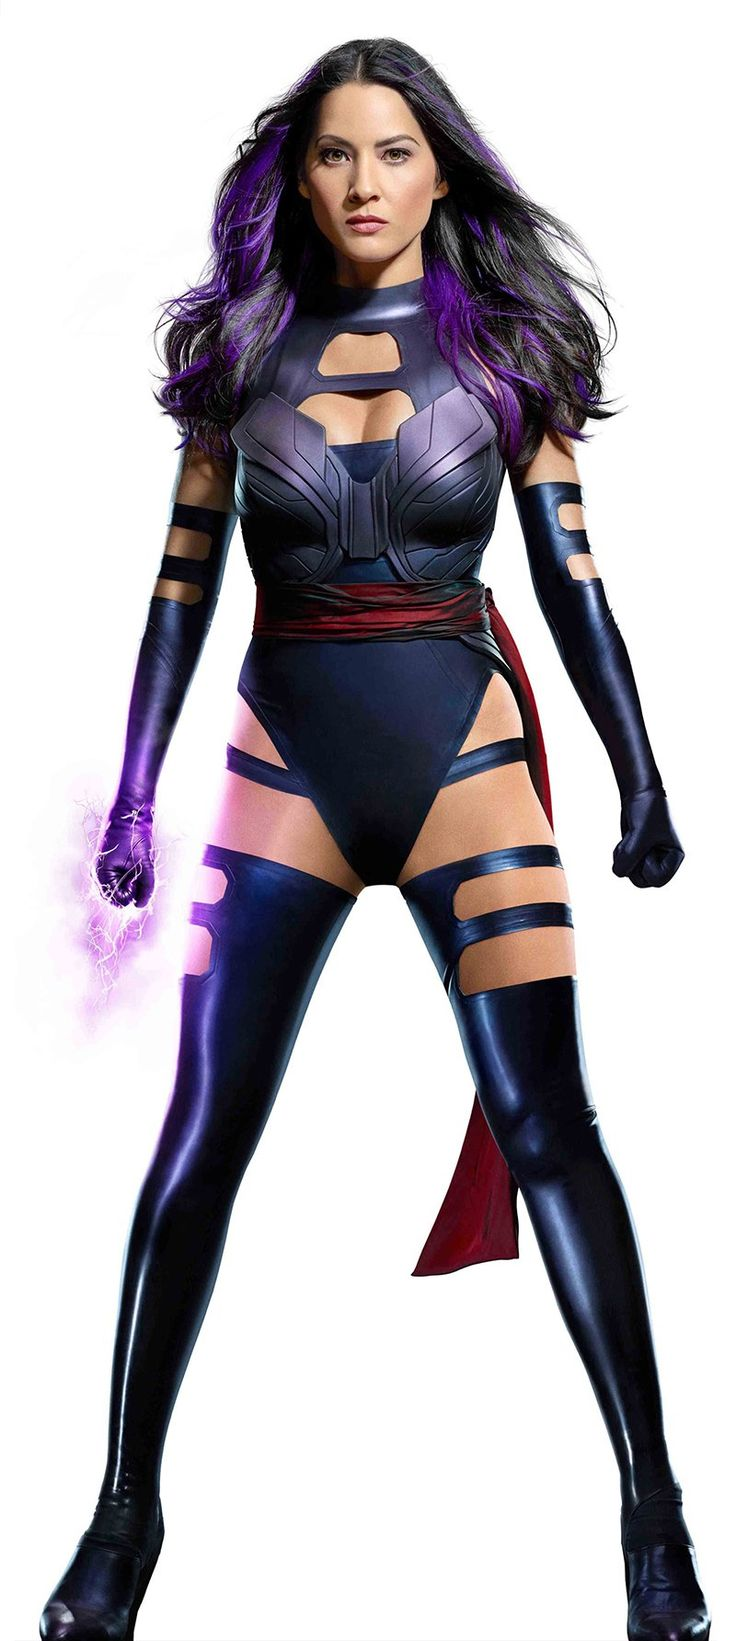 New X-Men: Apocalypse Olivia Munn Psylocke Image - Cosmic Book News--I was disappointed by her appearance in the movie but oh well